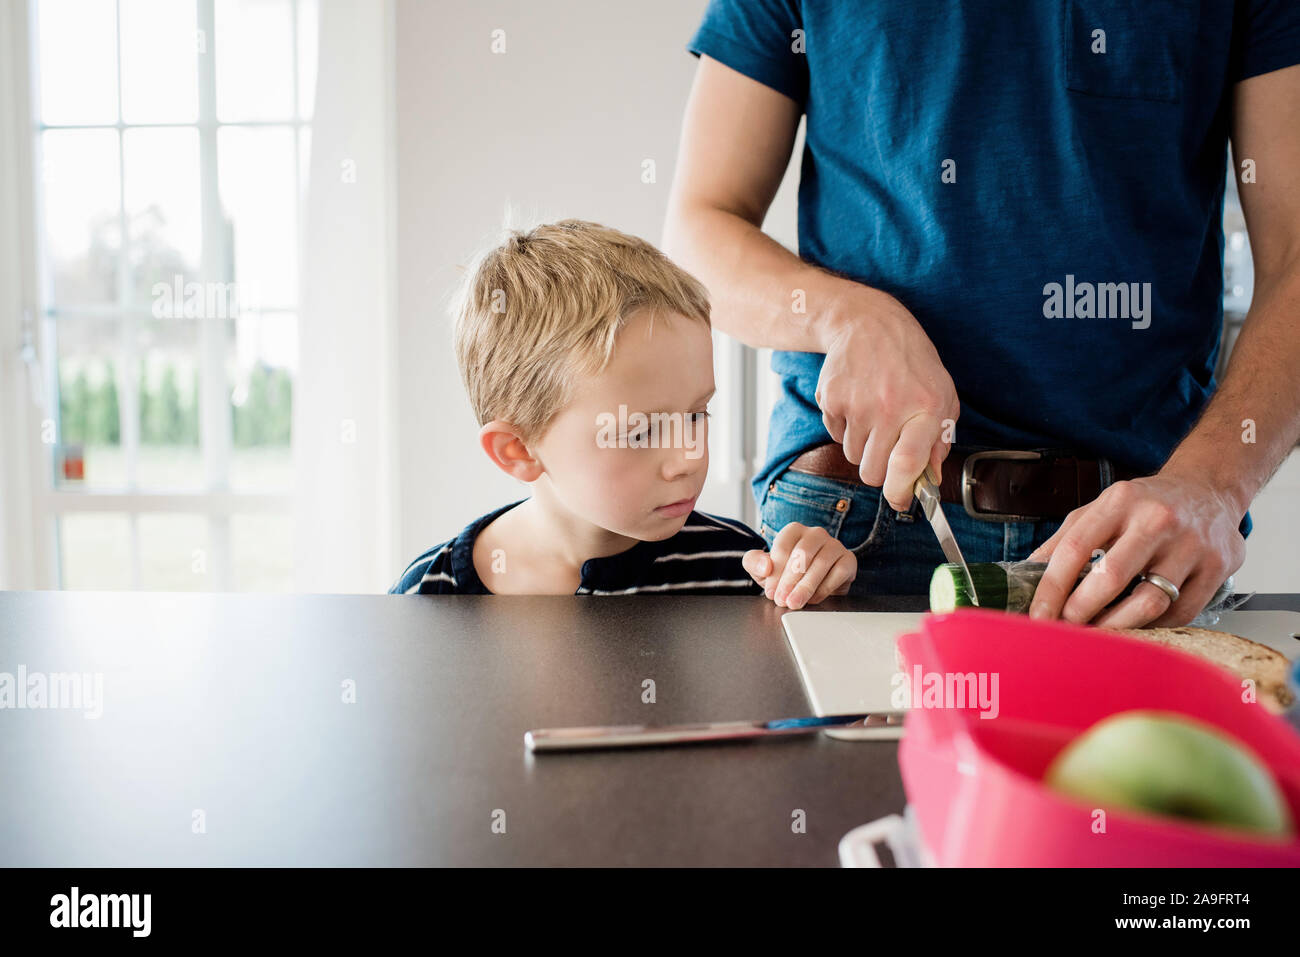 Child School Meal 10 High Resolution Stock Photography and Images ...